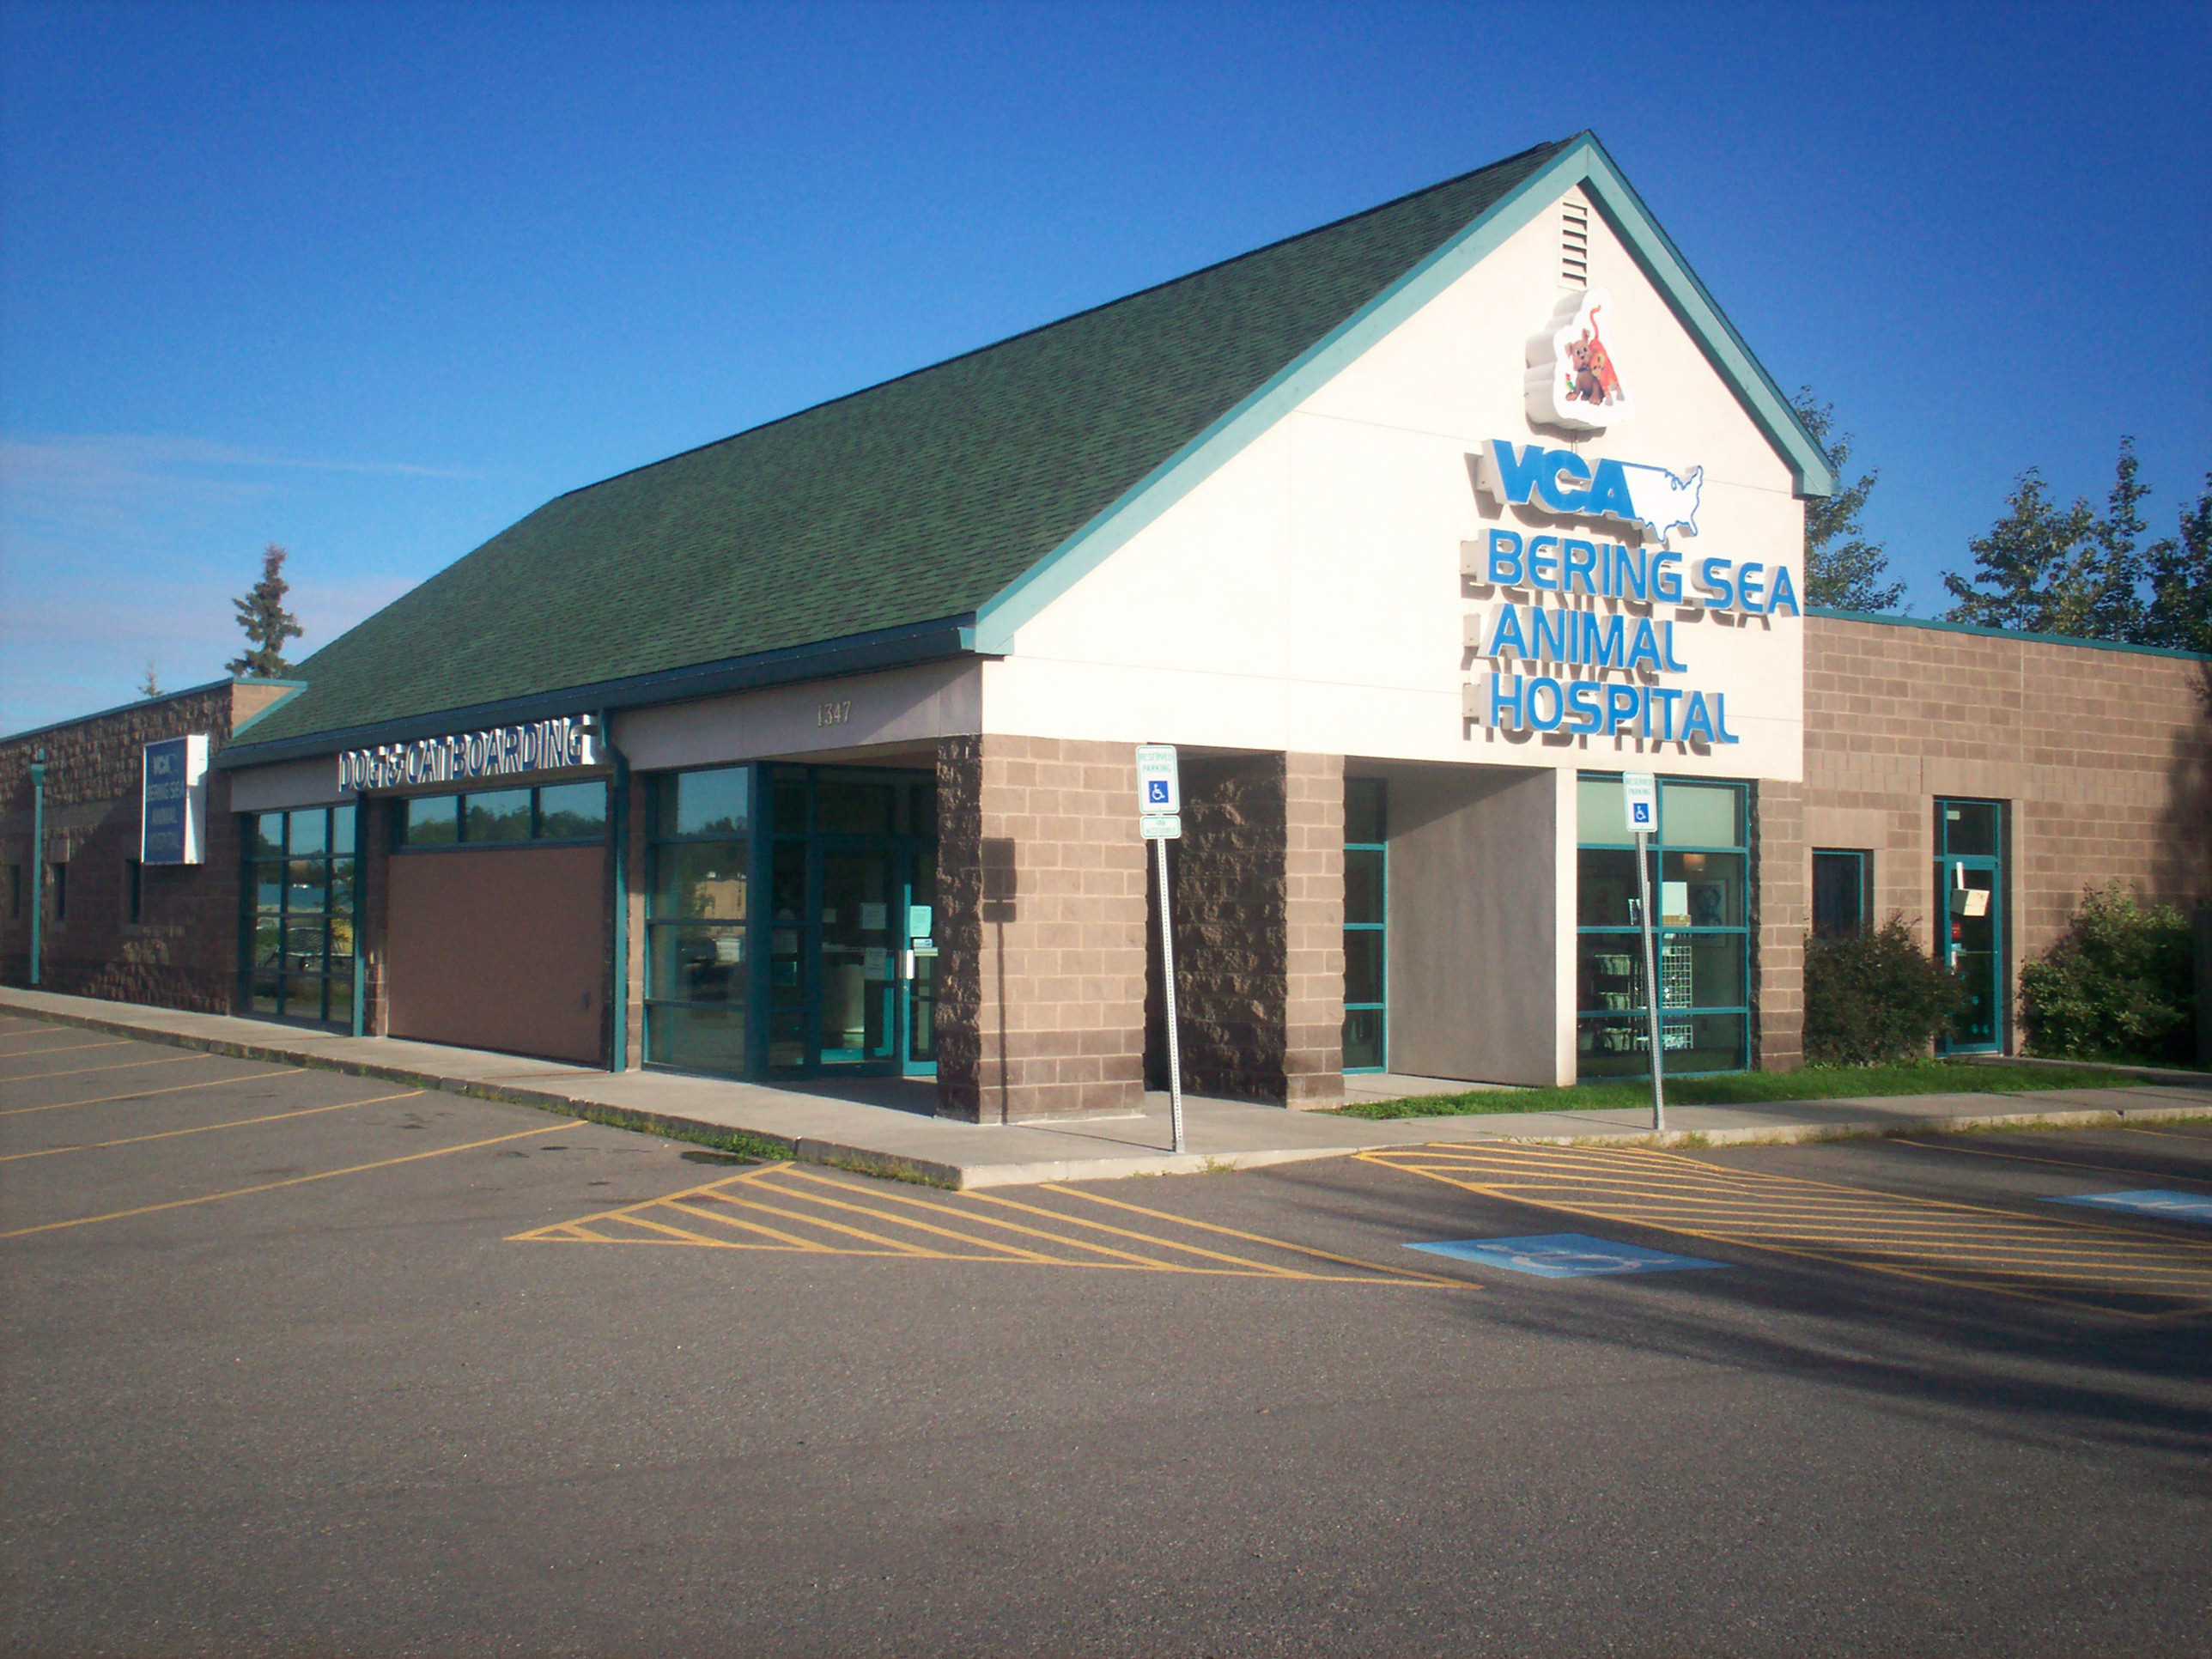 VCA Bering Sea Animal Hospital